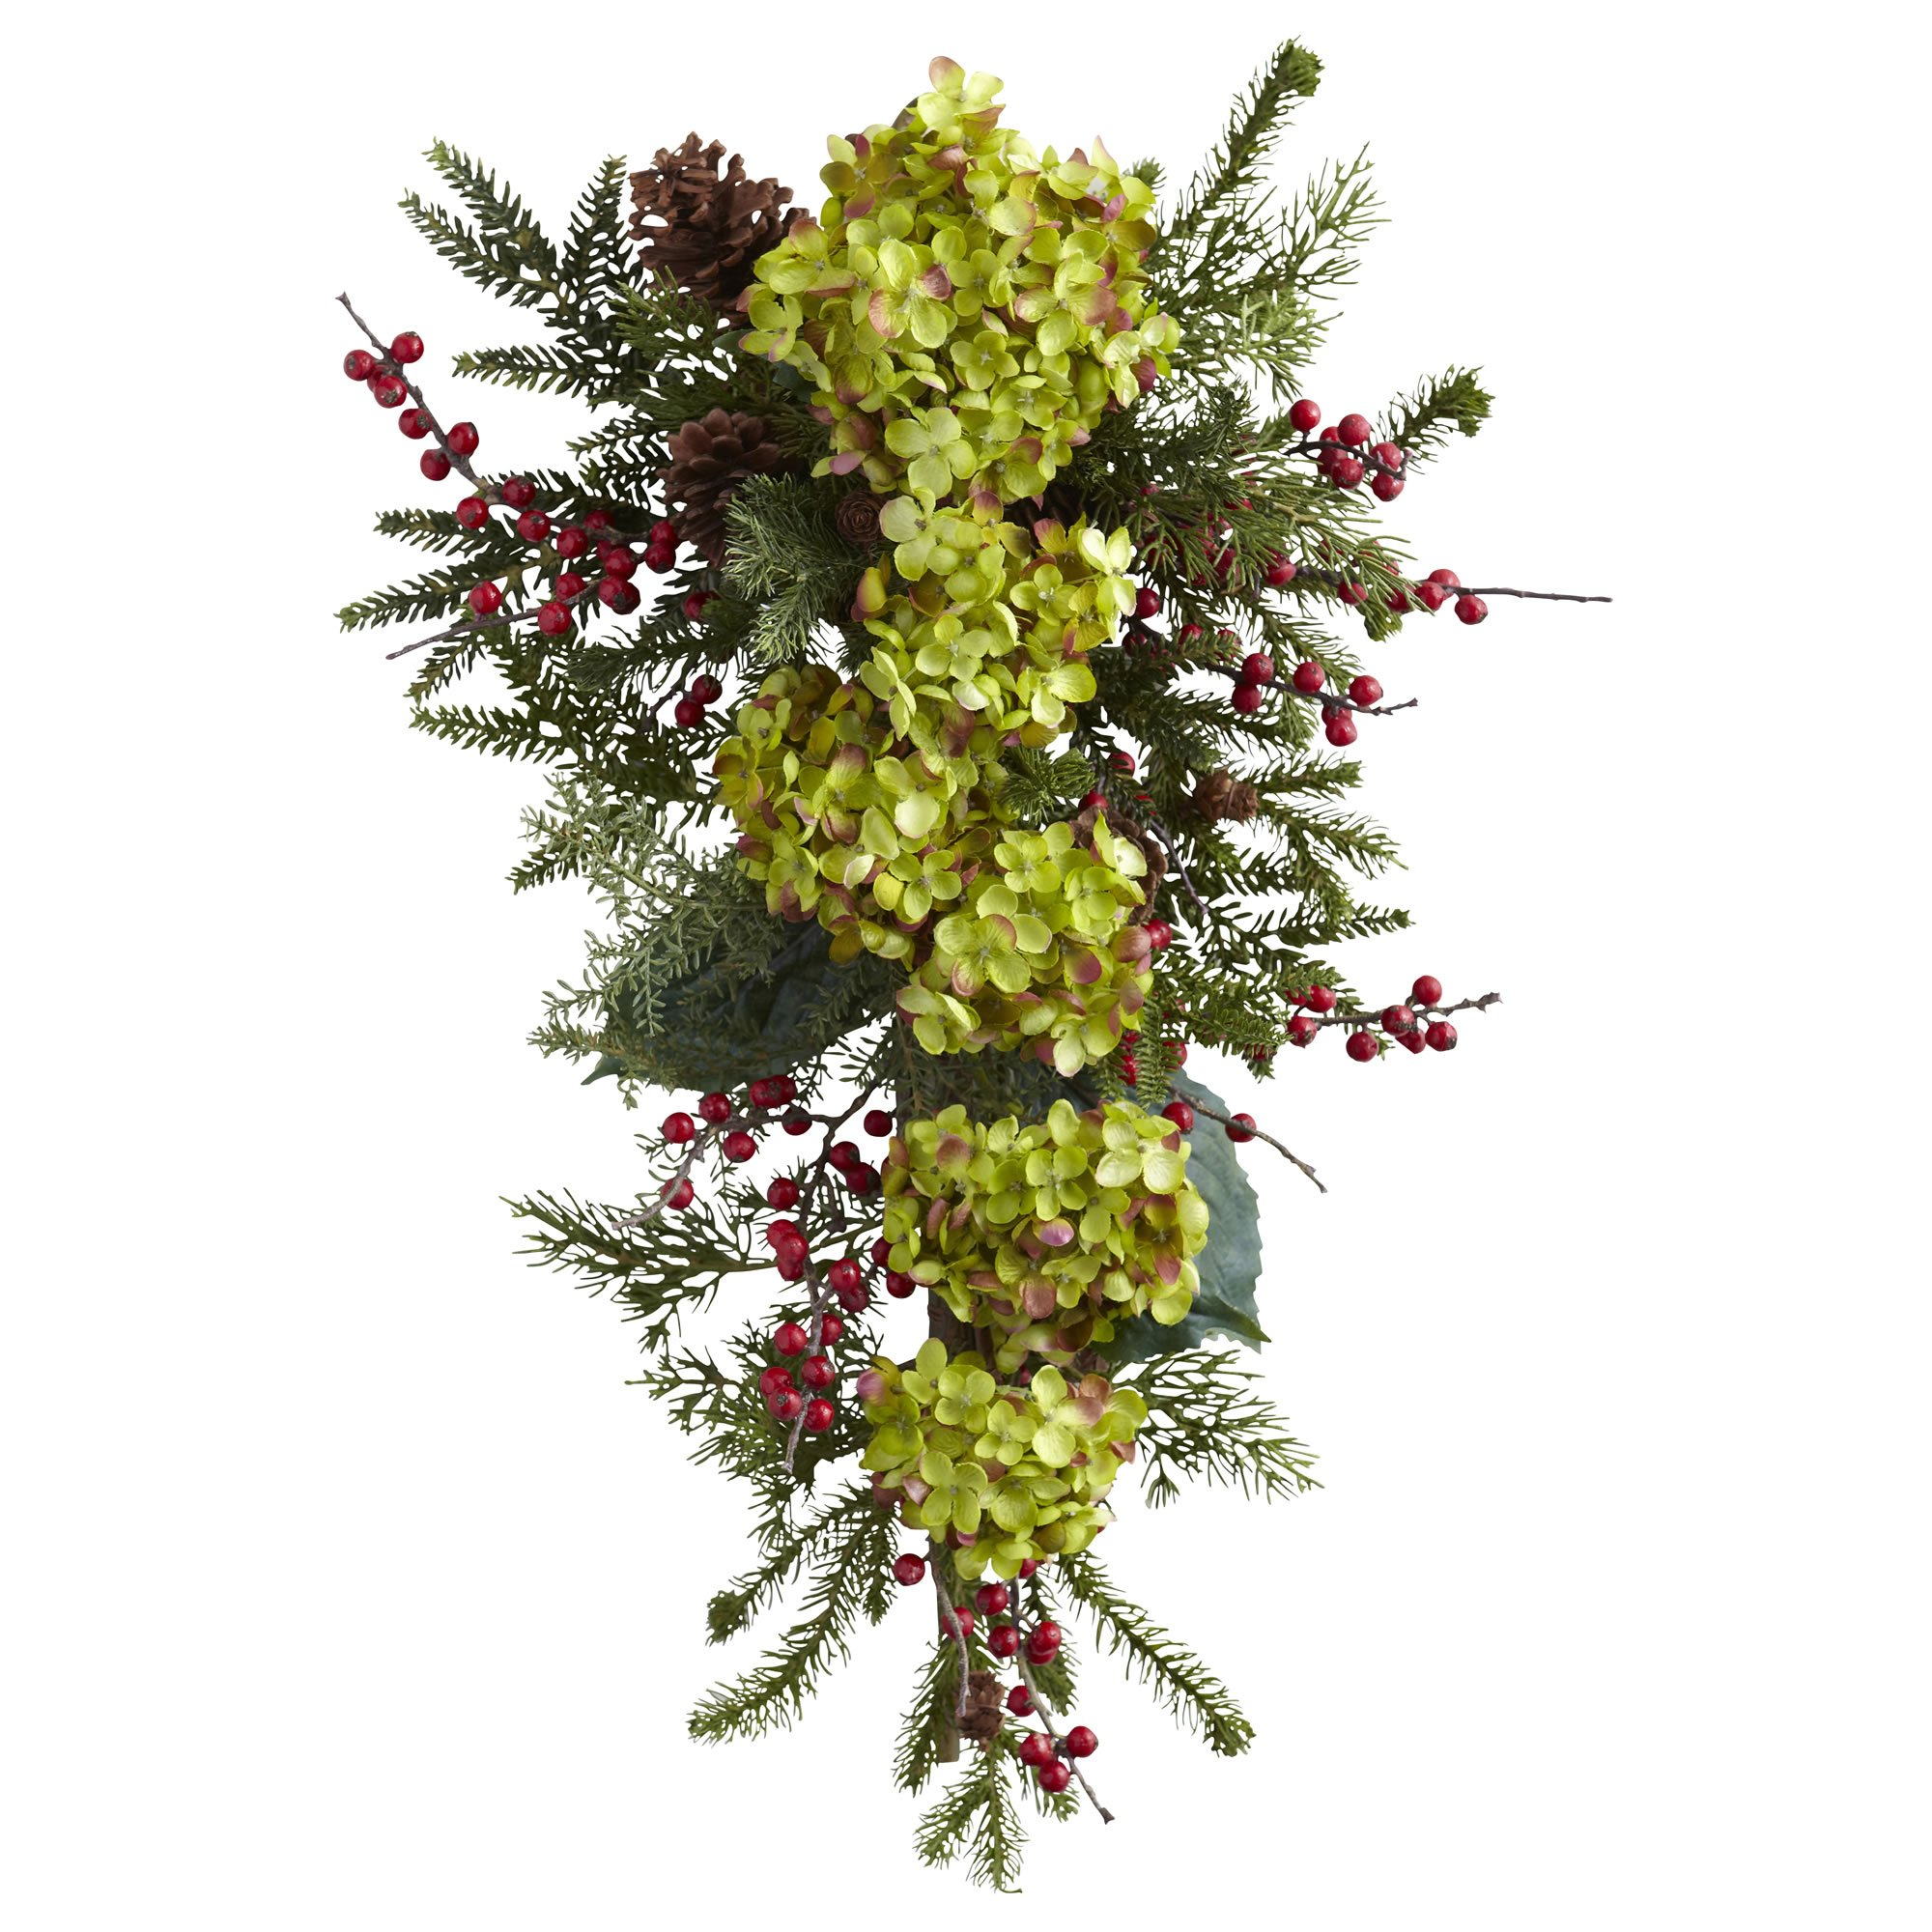 Nearly Natural 4940 Hydrangea, Pine and Berry Teardrop, 26-Inch, Multicolored/Gold/Orange